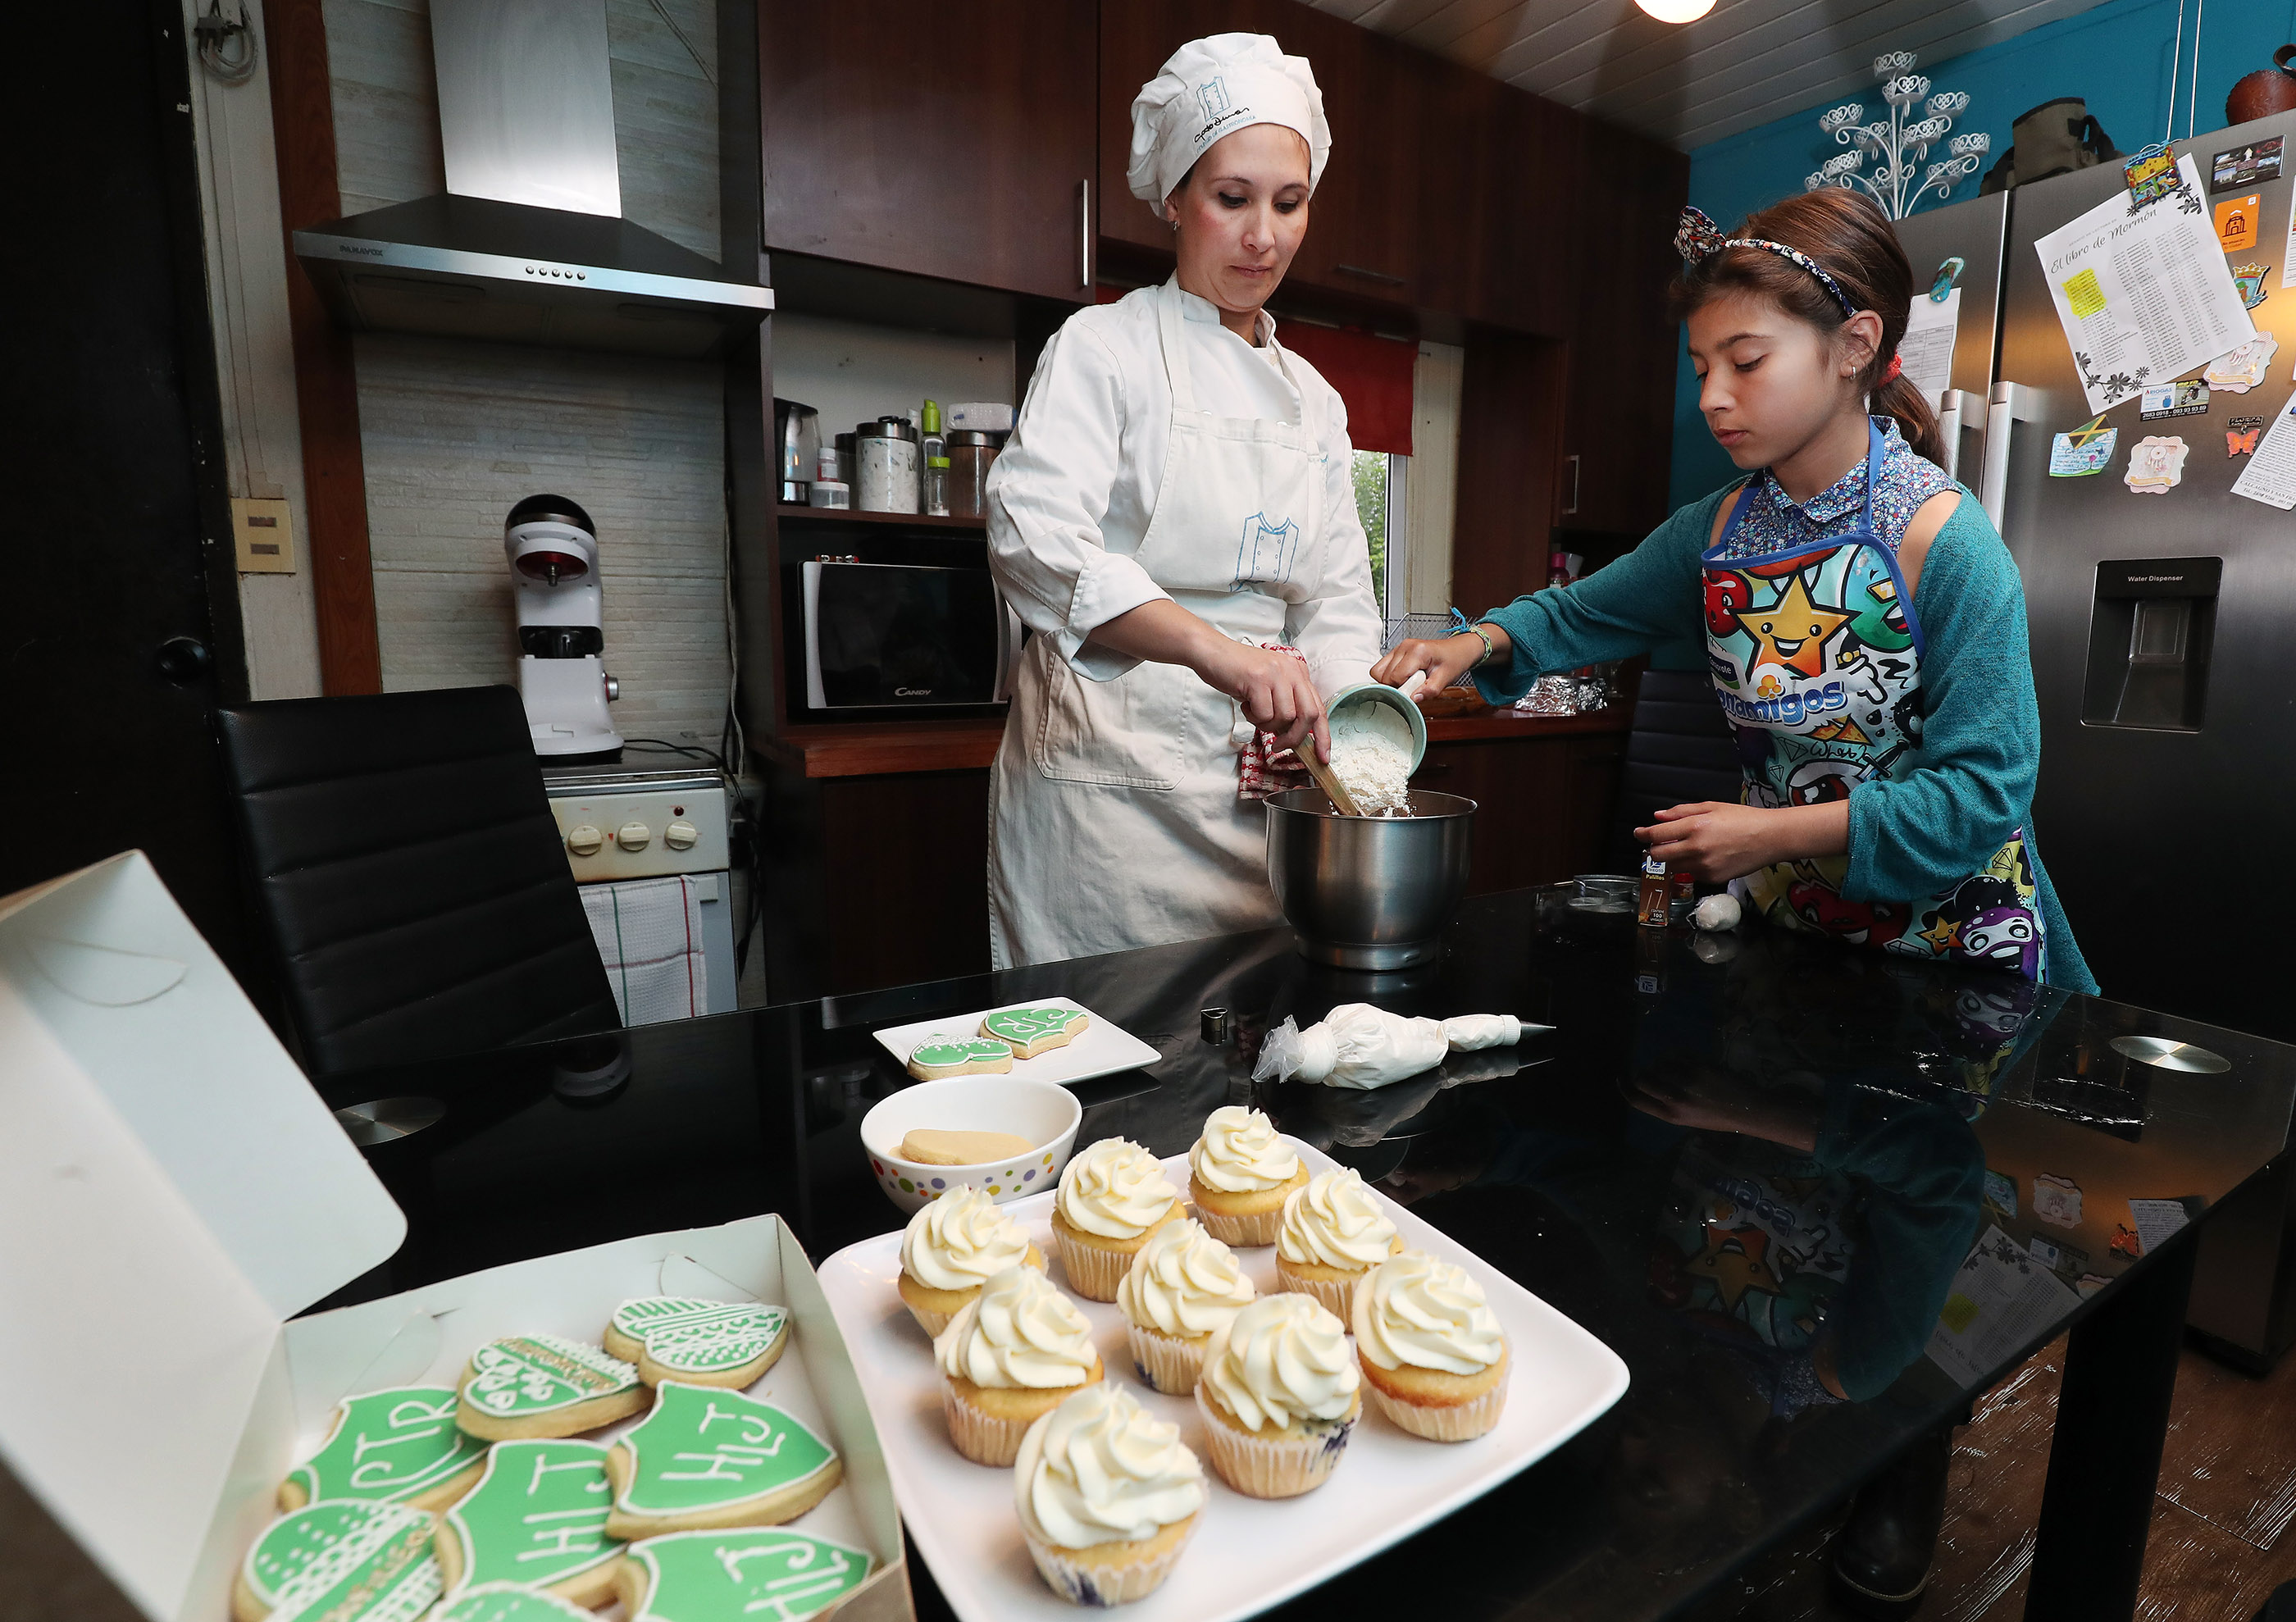 Janaina Silva Molla gets help from her daughter Sofia as she bakes at home in Montevideo, Uruguay, on Thursday, Oct. 25, 2018. Molla is building a business to supply cakes and pastries for parties with skills acquired by Self Reliance classes offered by the Church.